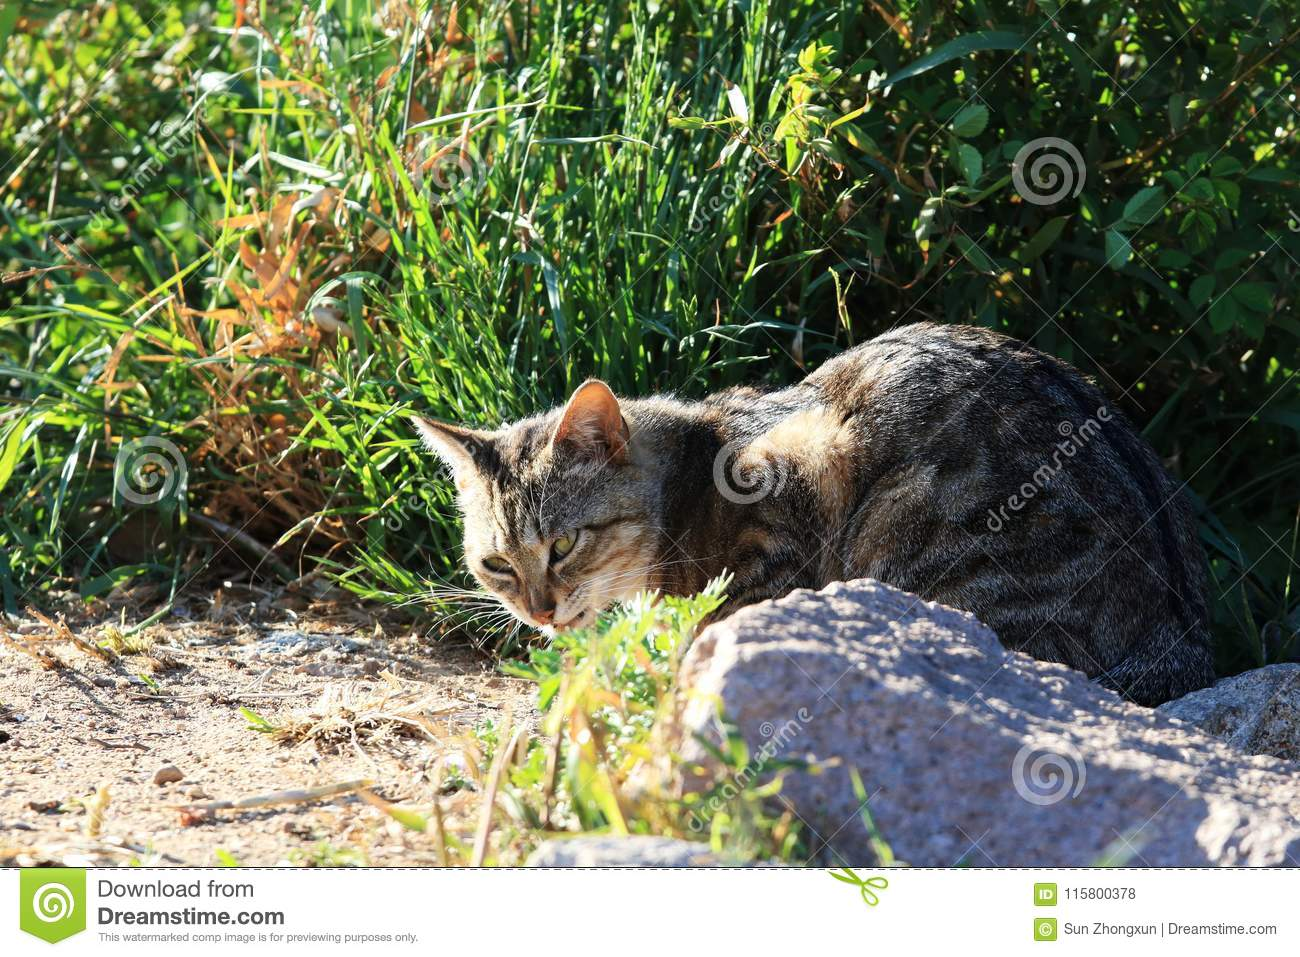 A watchful cat